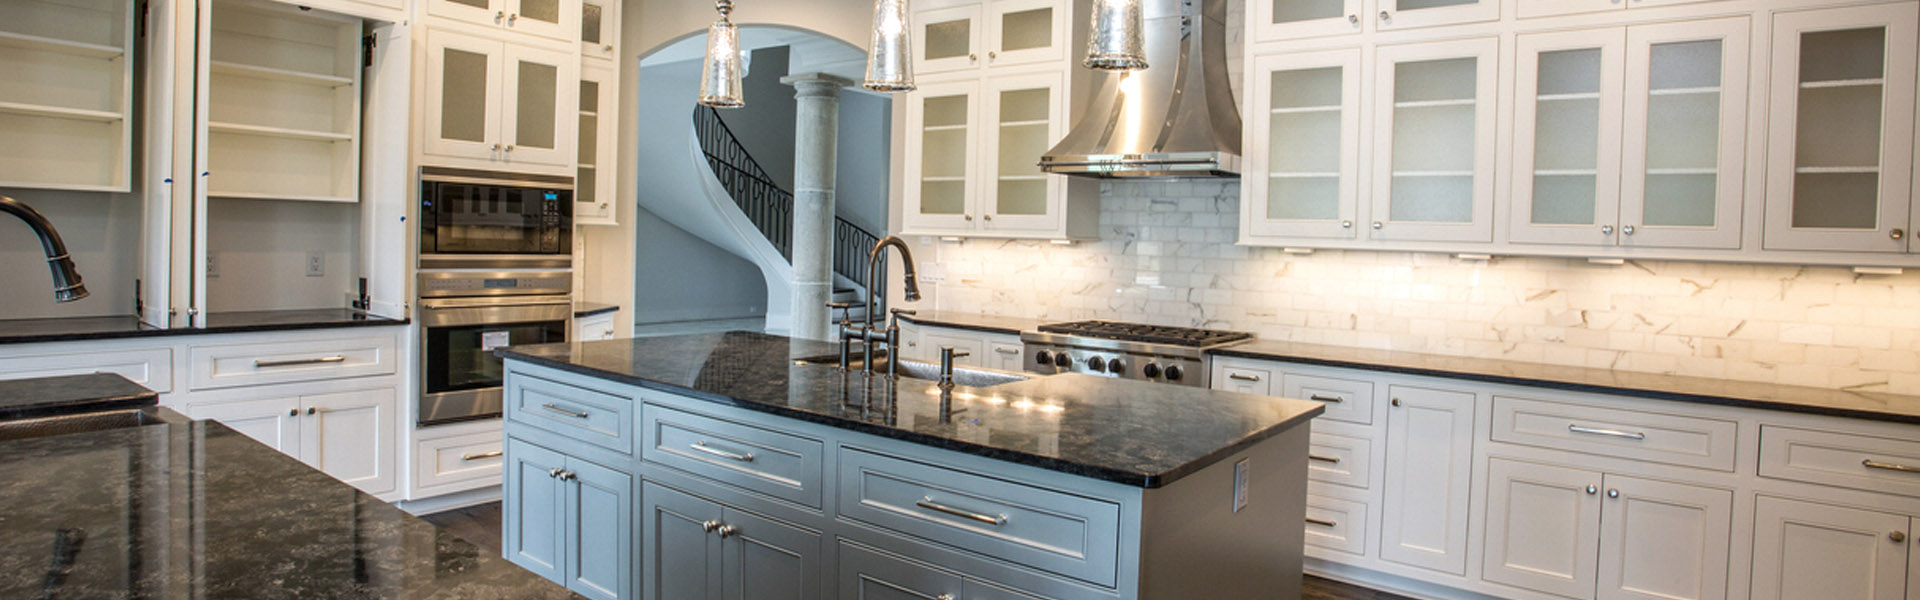 custom kitchen cabinets greenville sc